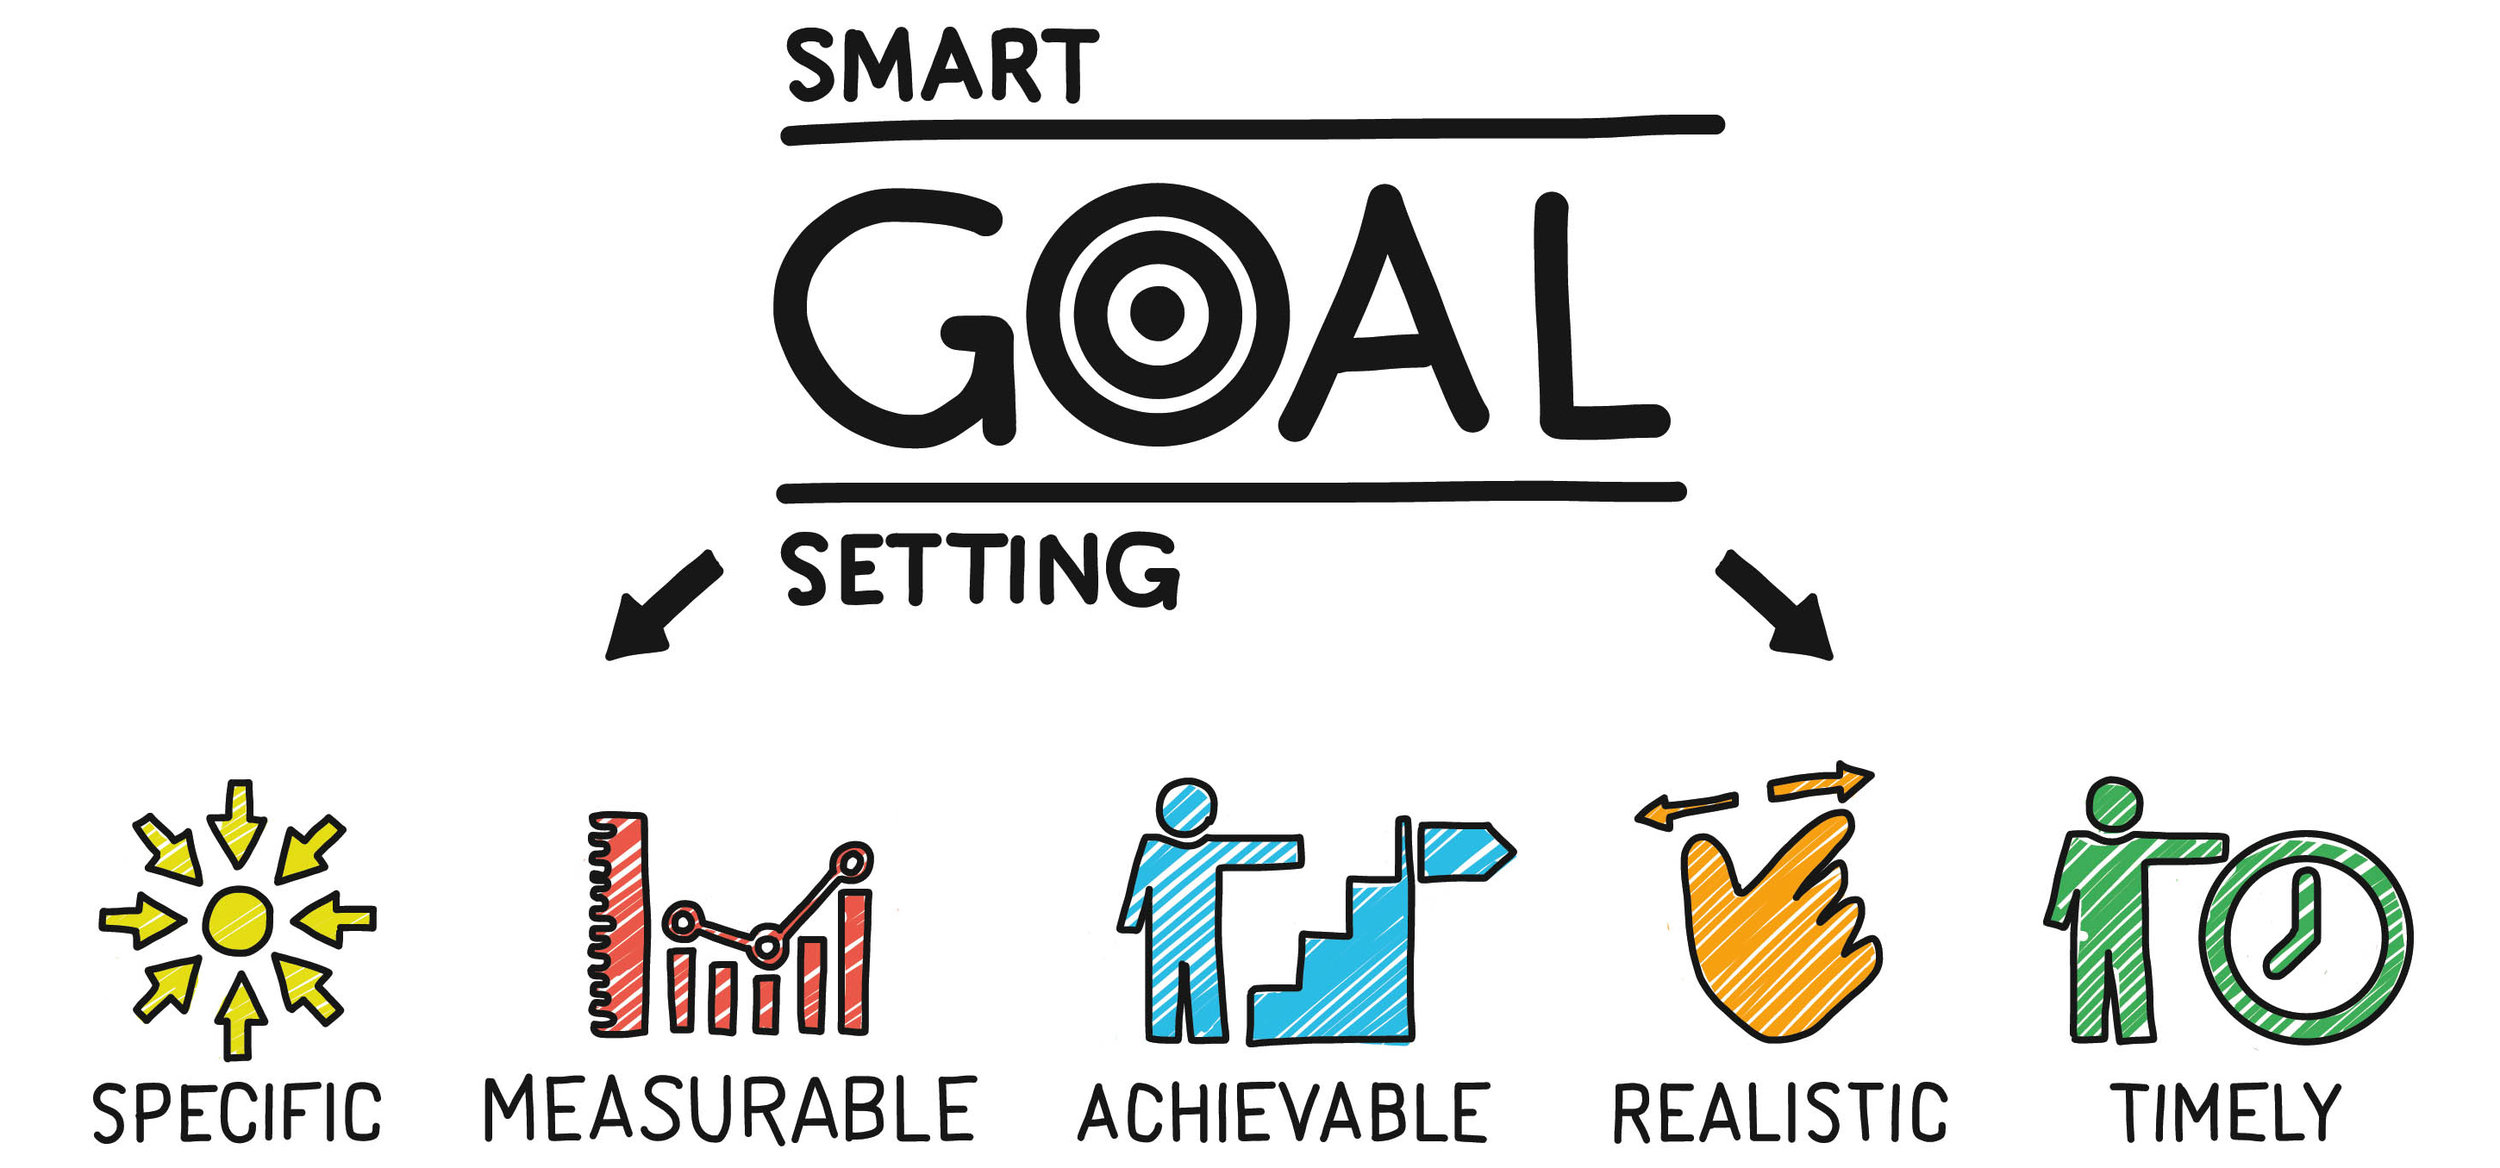 Smart Goals horizontal.jpg